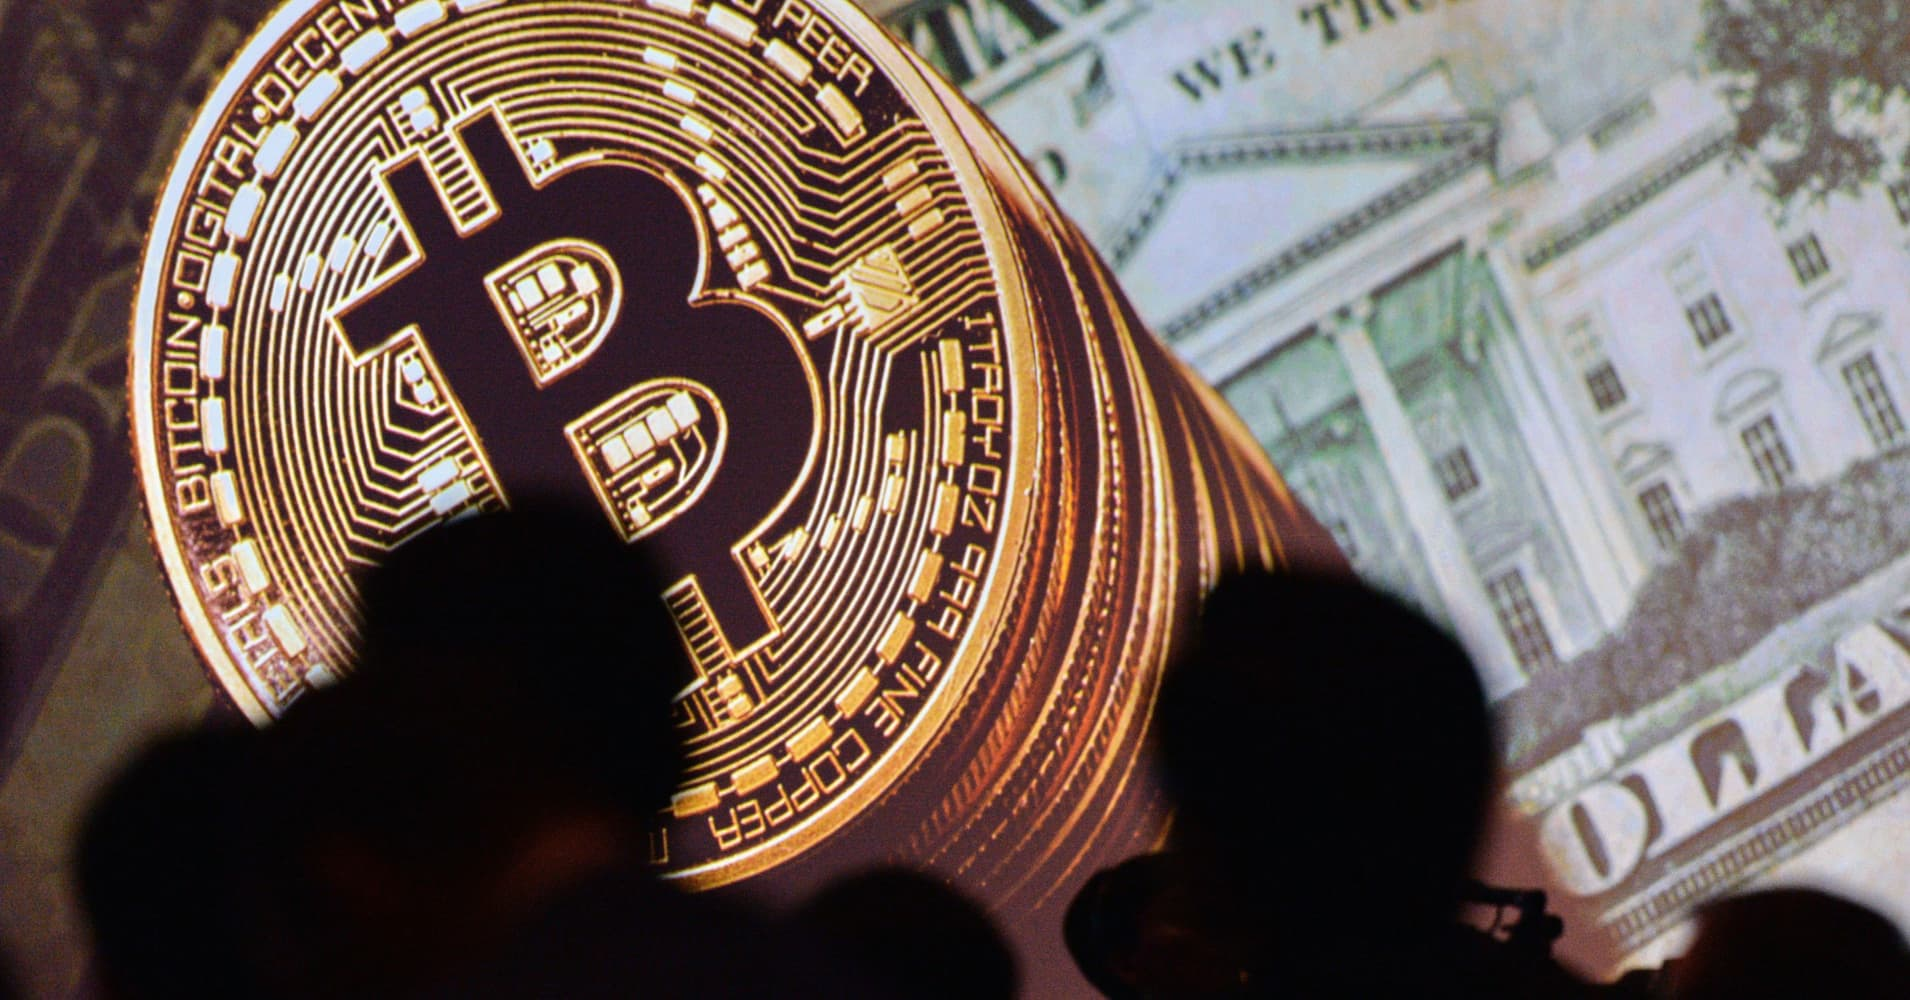 Bitcoin is the 'most crowded' investment in the world right now